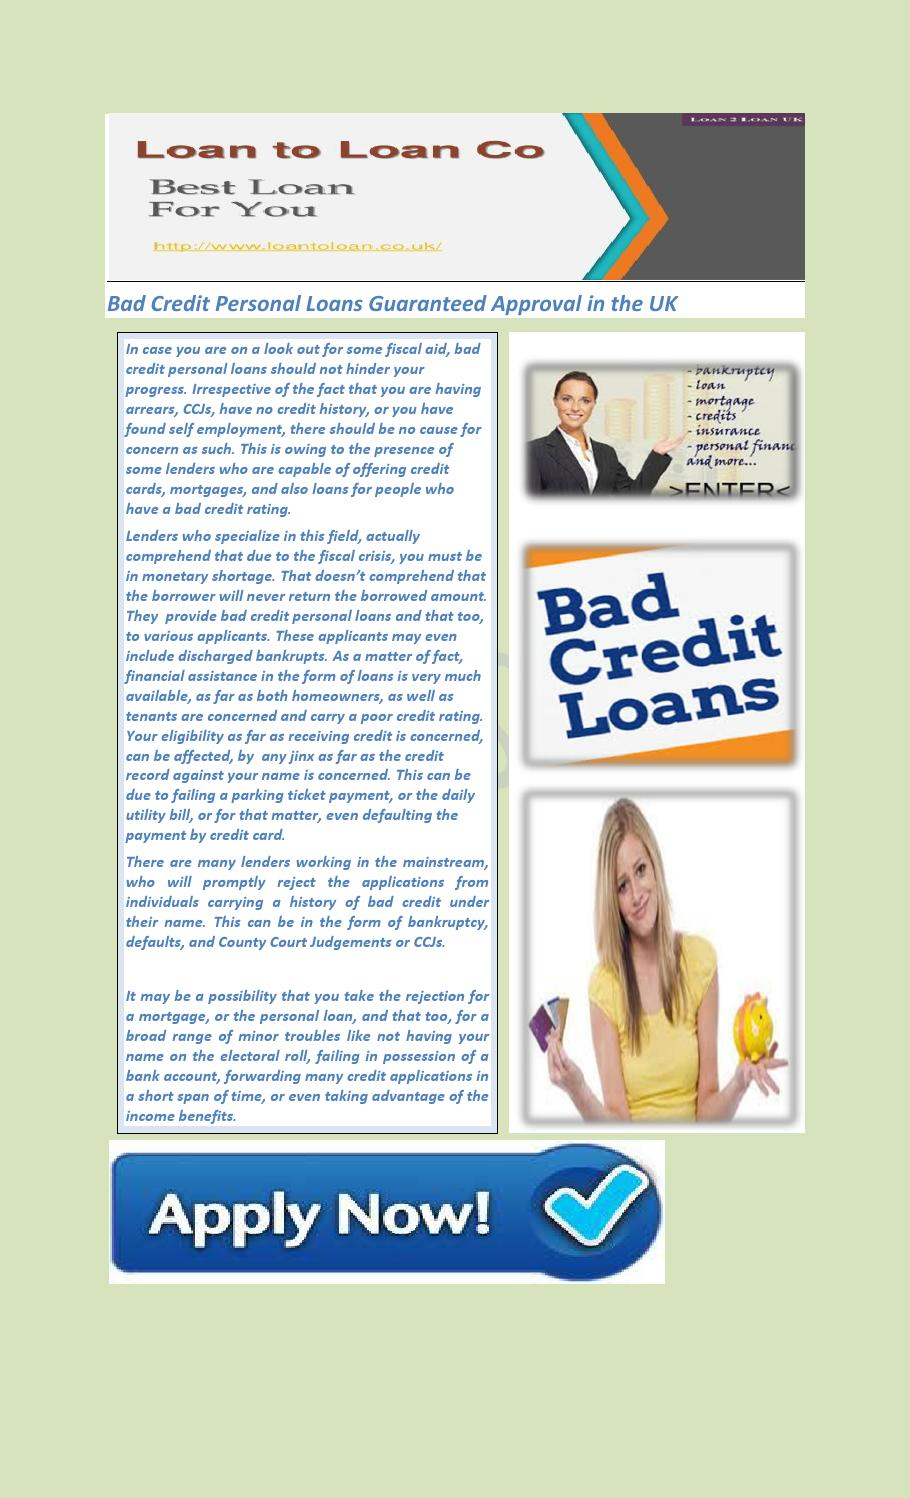 Bad Credit Personal Loans Guaranteed Approval in the UK by samualbrian - issuu